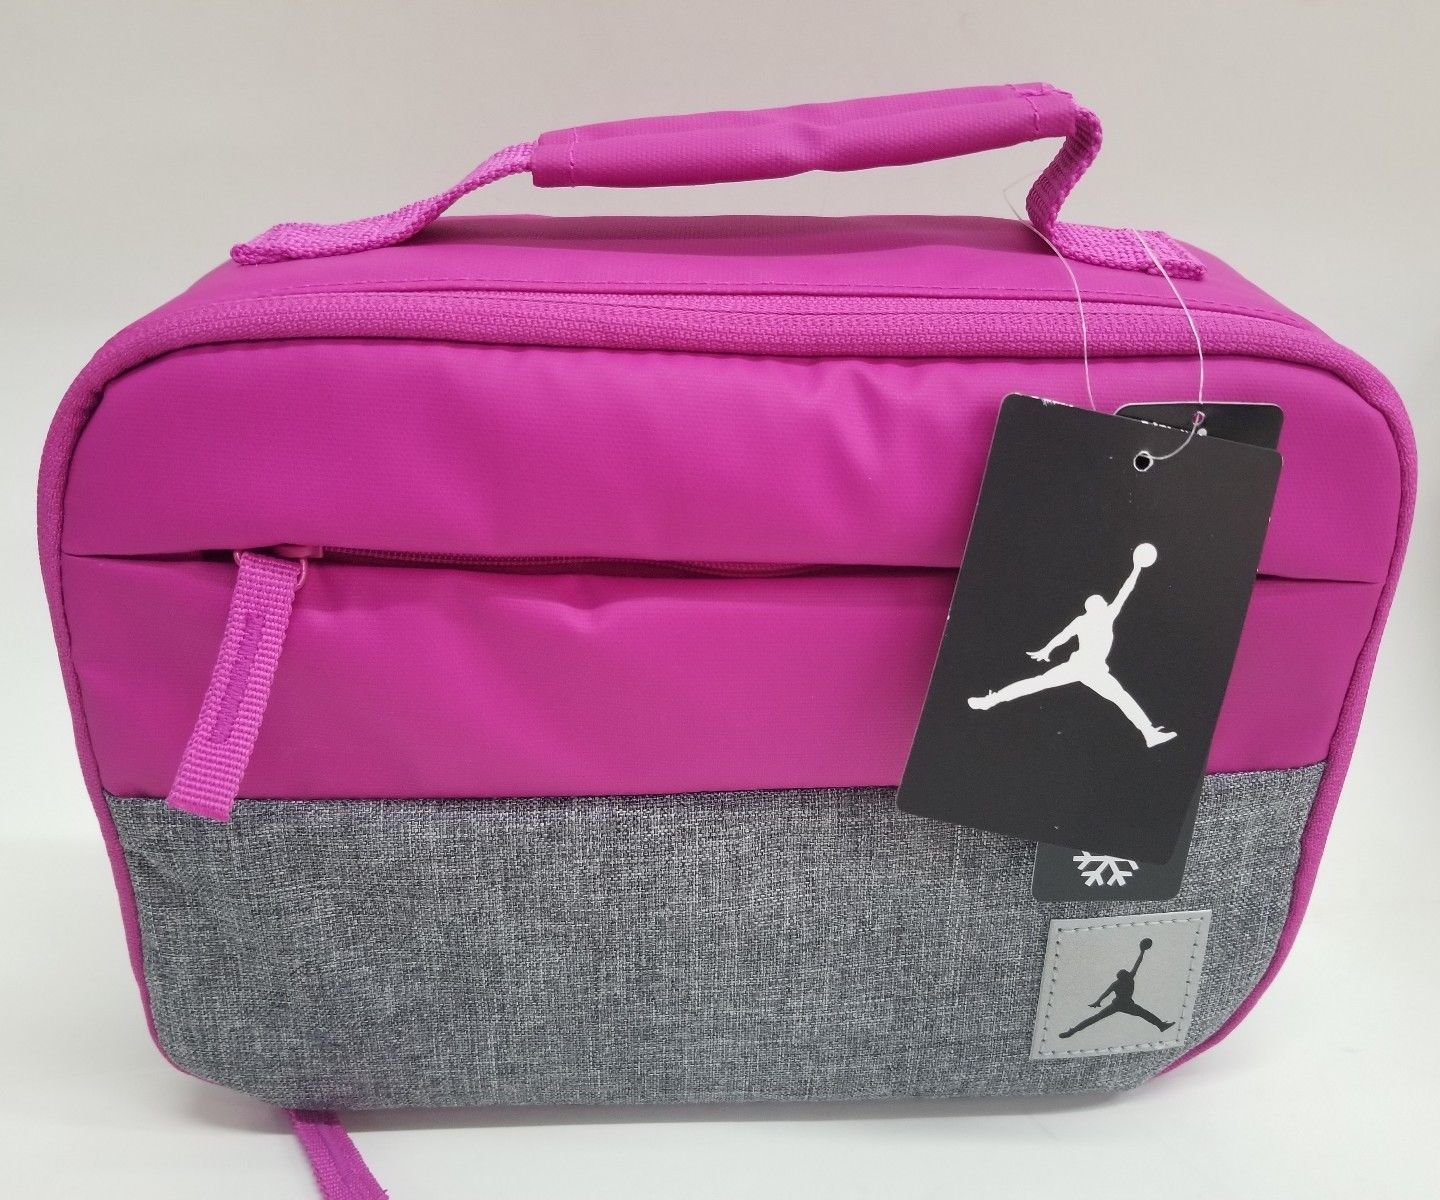 Nike Air Jordan Pivot Insulated Lunch Box and 31 similar items ff98bf0eb4